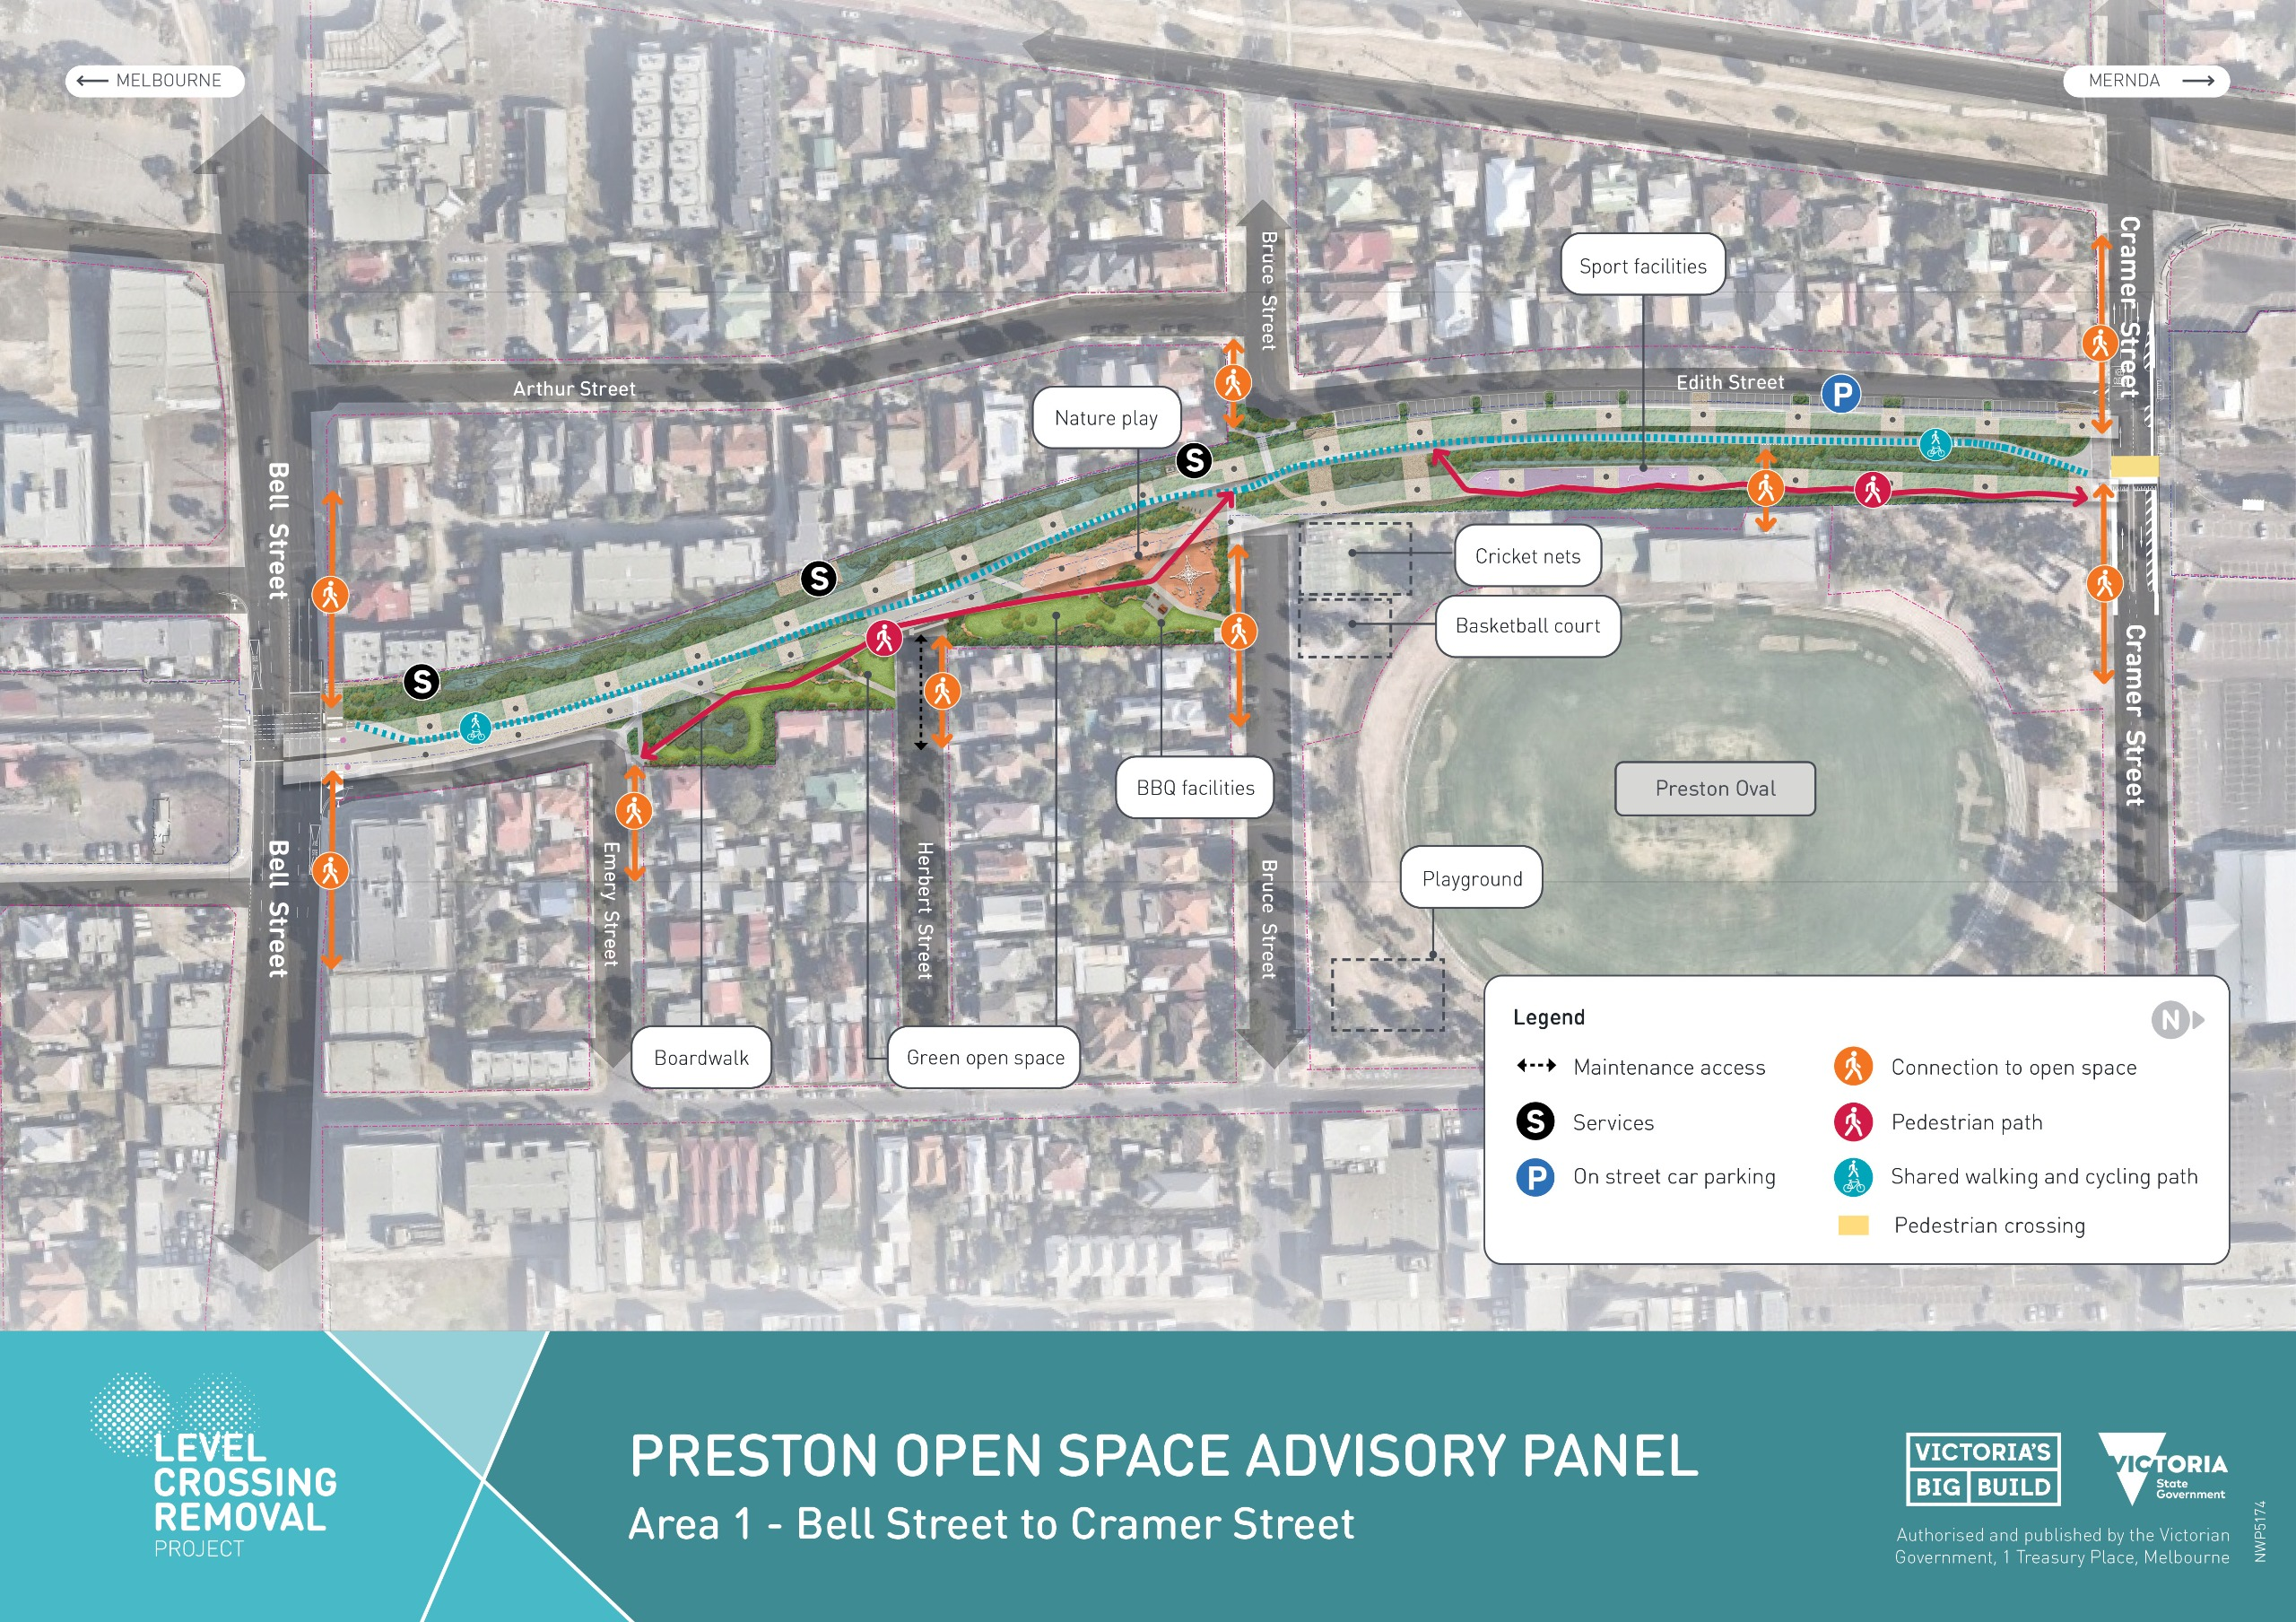 Preston Open Space Advisory Panel (POSAP) area one includes the open space under the new elevated rail bridge between Bell Street and Cramer Street for the Preston Level Crossing Removal Project.  Within the open space on the west side are trees and vegetation and access for the combined services for power and to operate the trains safely. A shared walking and cycling path connecting all open spaces runs through the middle of the area.  In the south, between Emery and Herbert streets, the open space is filled with native vegetation and boardwalks to allow you to walk through an area with natural drainage basins.  Between Herbert and Bruce streets, the area consists of wide green open space, BBQs and a nature play area.  Sport facilities are located between Bruce and Cramer streets, linking the area to Preston City Oval.